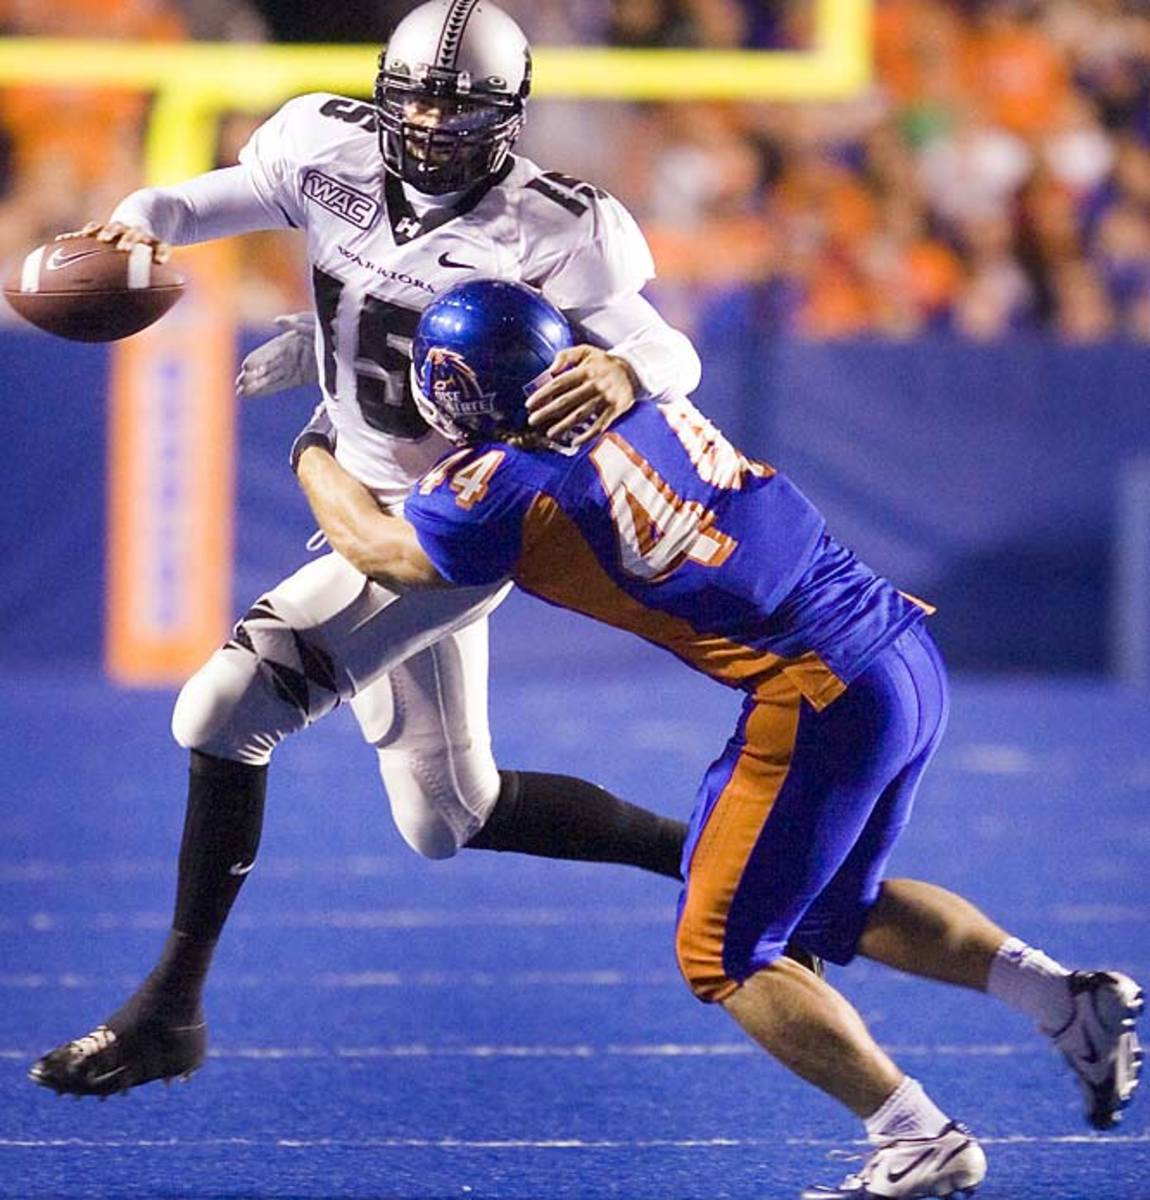 Boise State at Hawaii